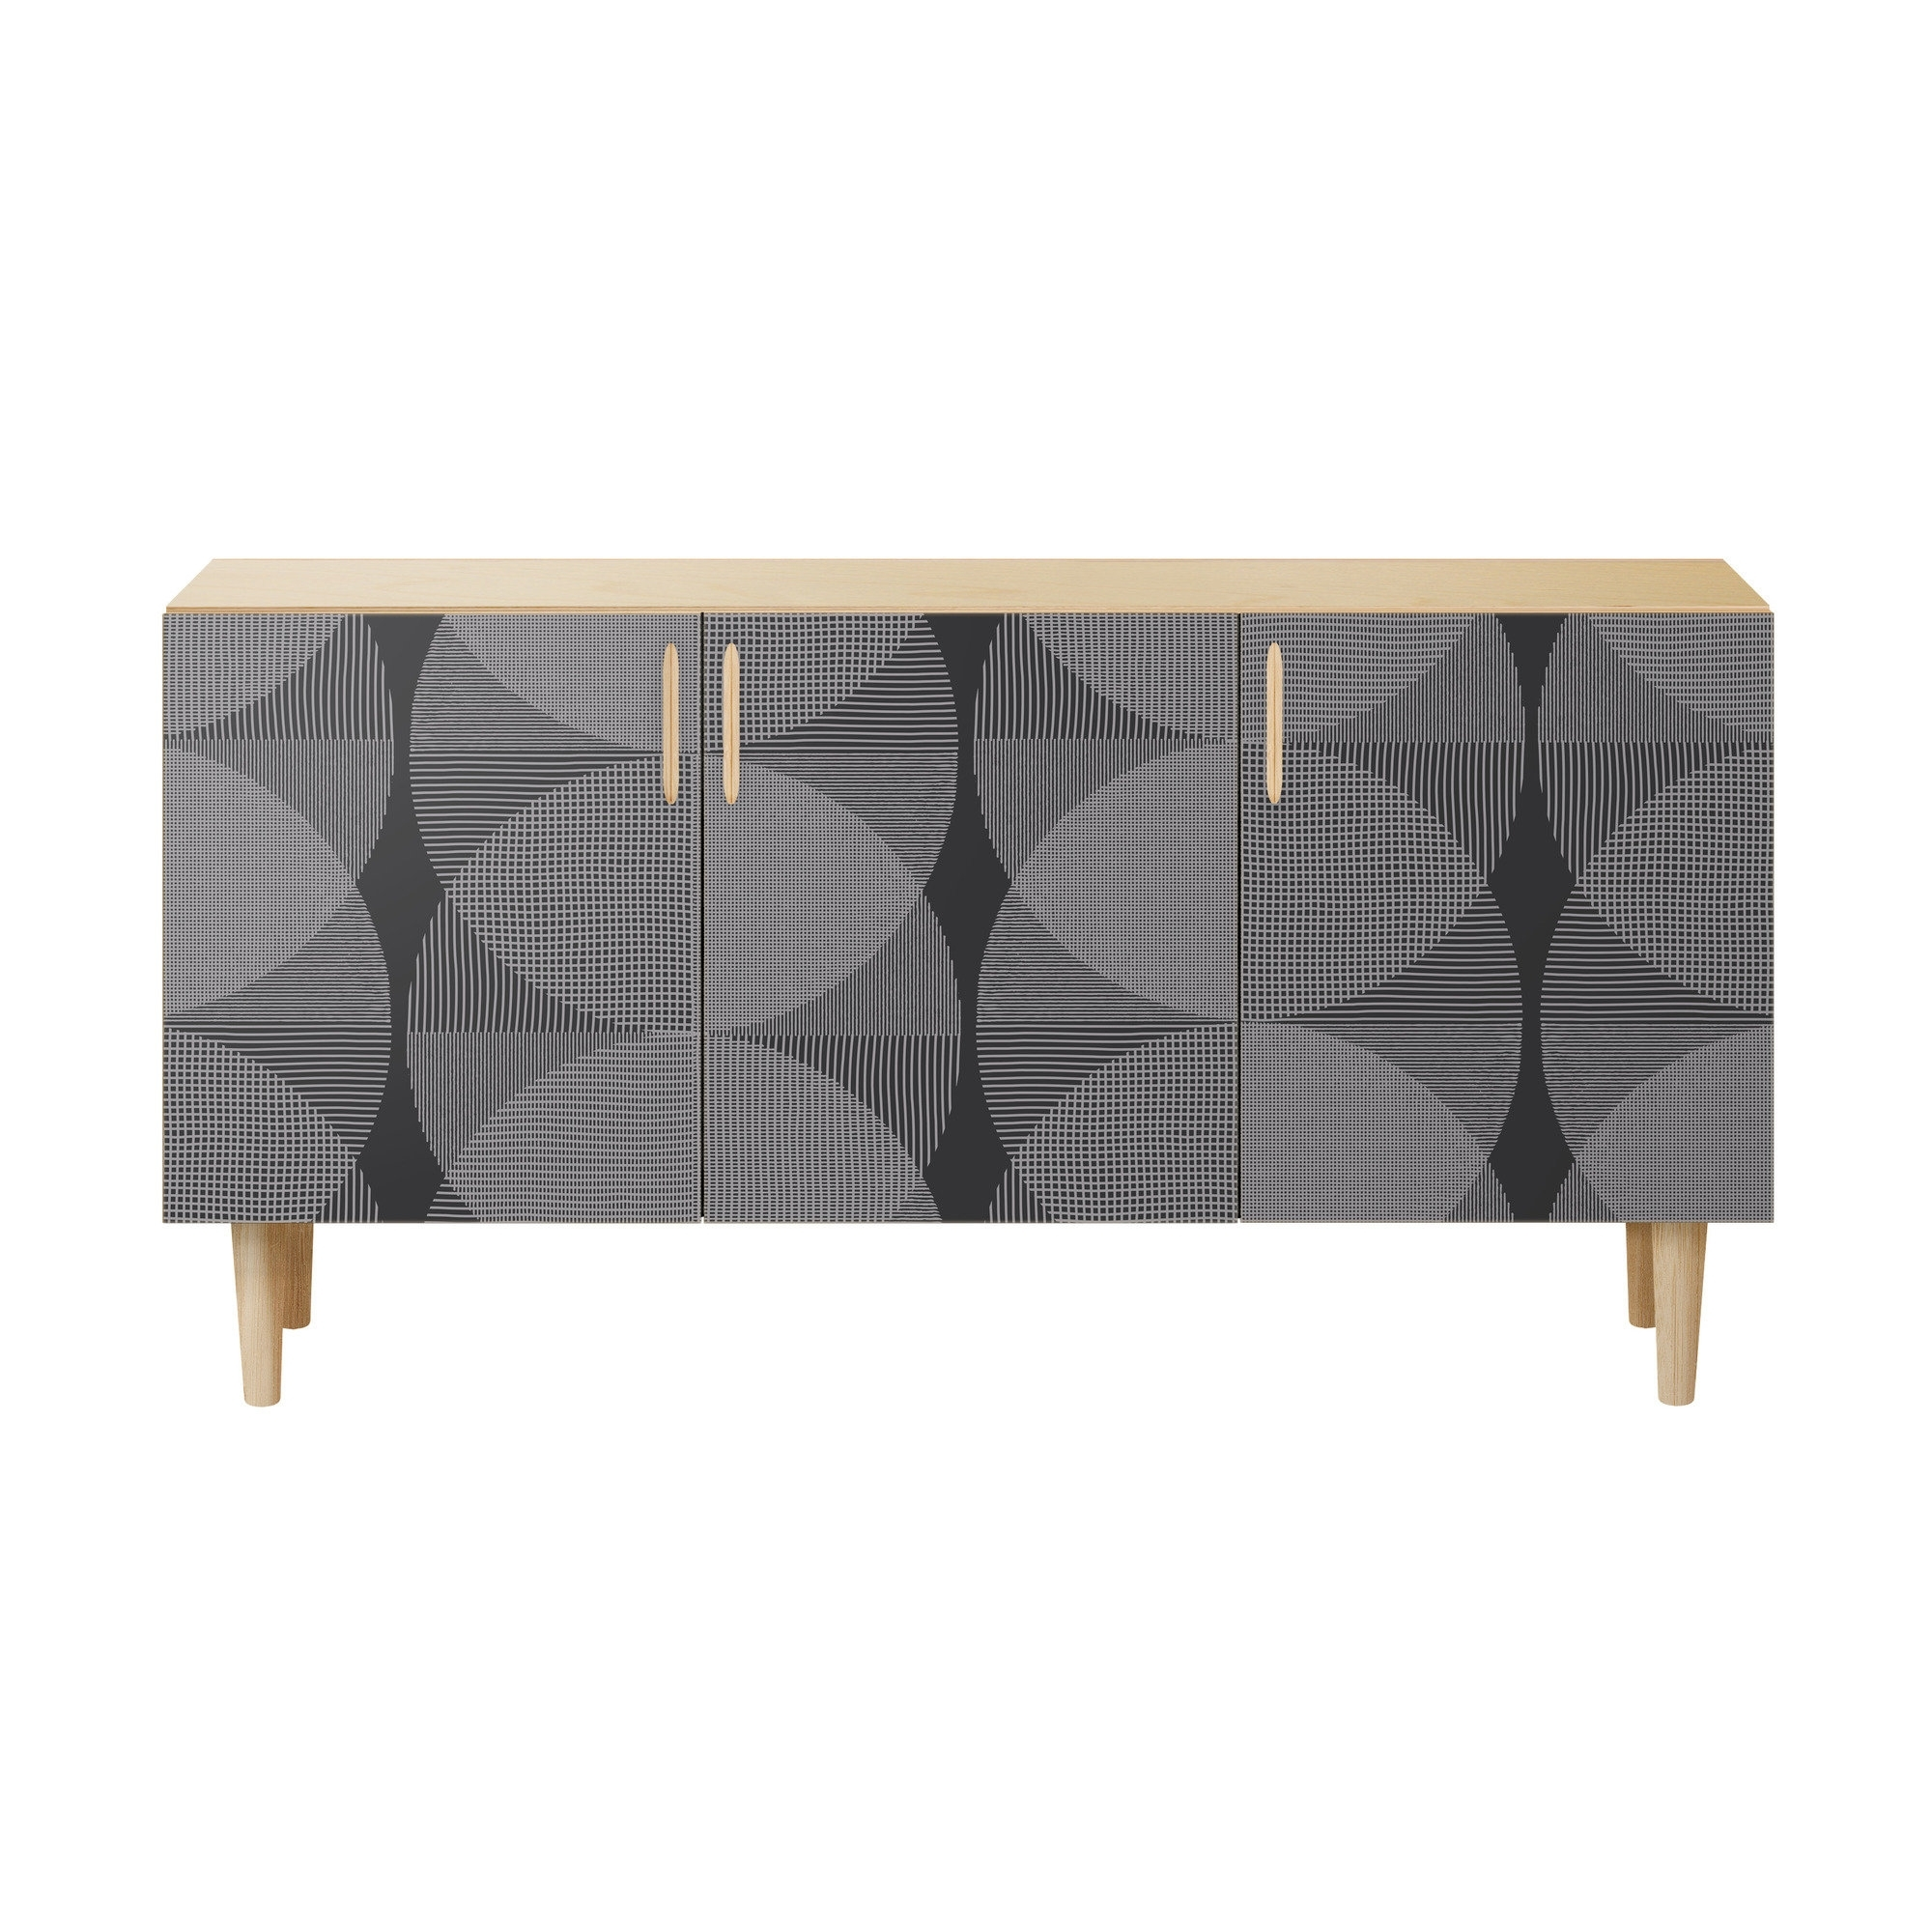 Corrigan Studio Teagan Sideboard | Ebay With Regard To Most Recently Released Teagan Sideboards (View 1 of 20)